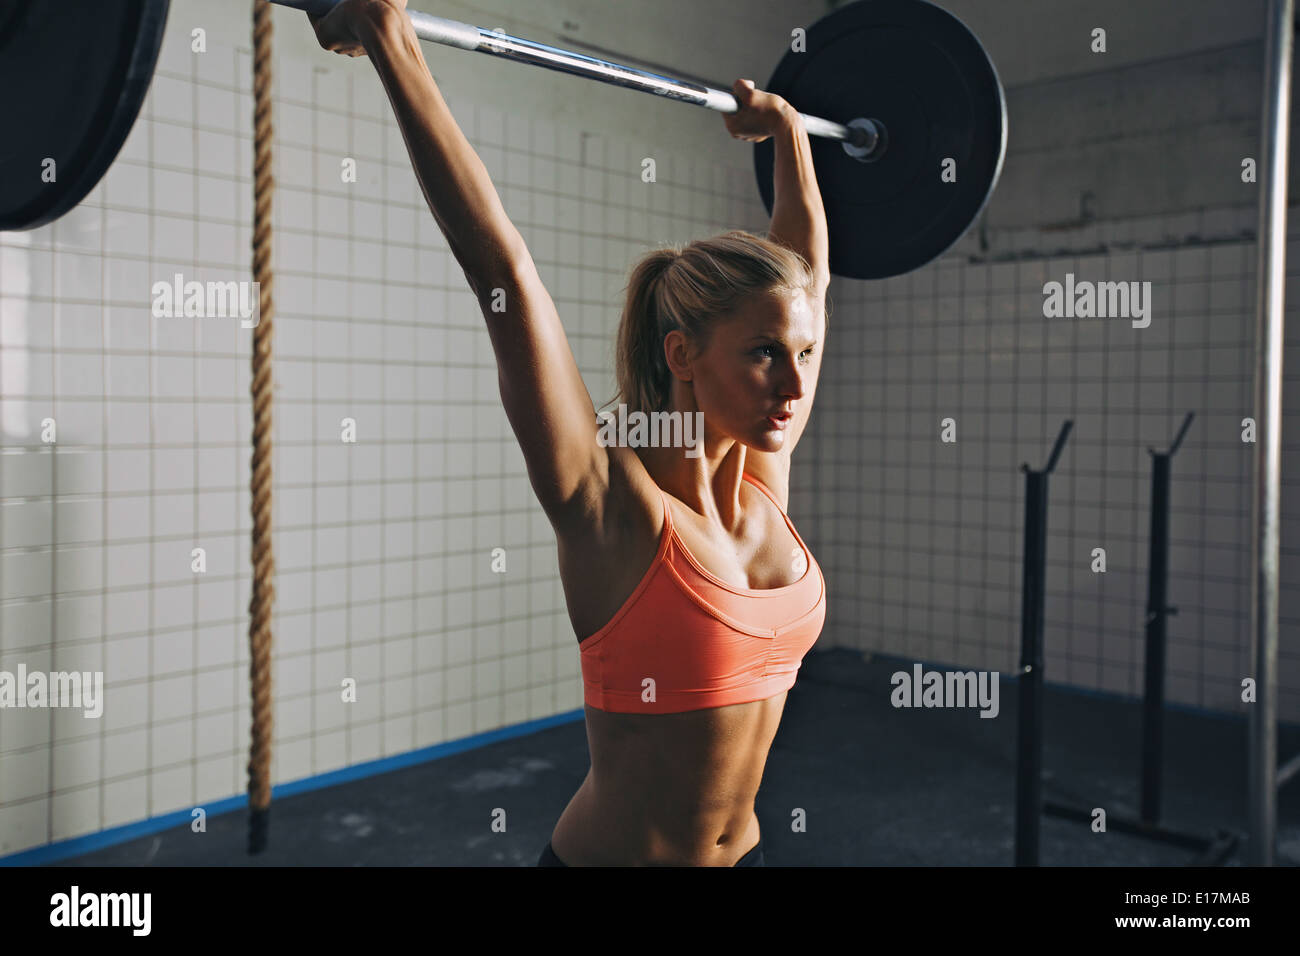 Strong Woman lifting barbell comme partie de crossfit routine d'exercice. Fit young woman lifting des poids lourds au sport. Photo Stock